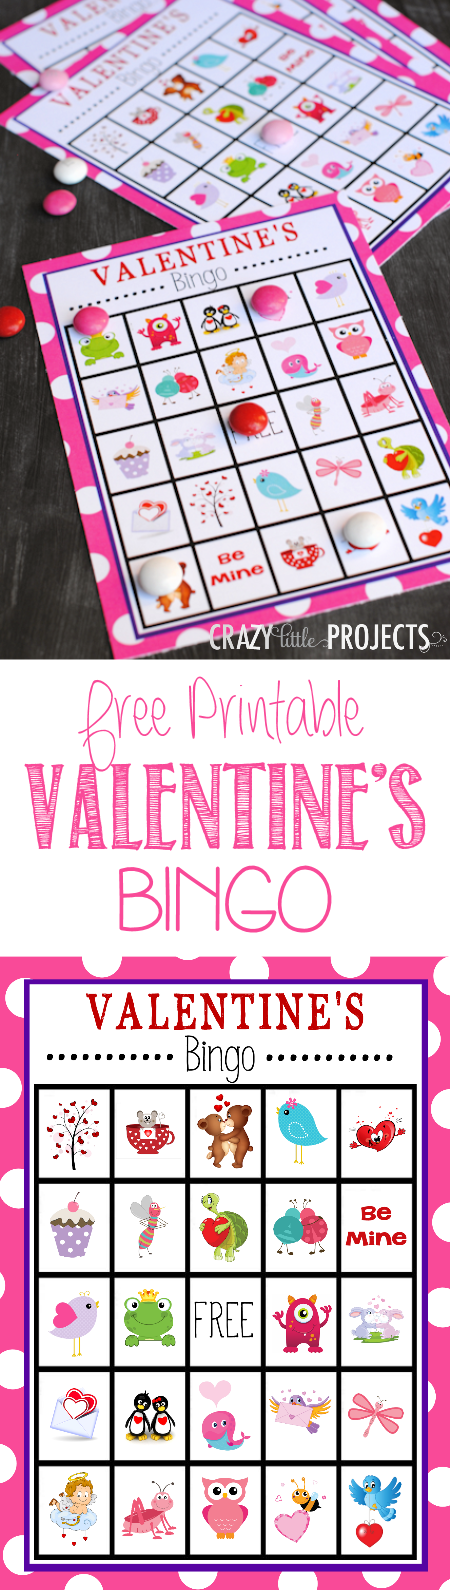 Free Printable Valentine's Day Bingo Game for Valentine's Parties